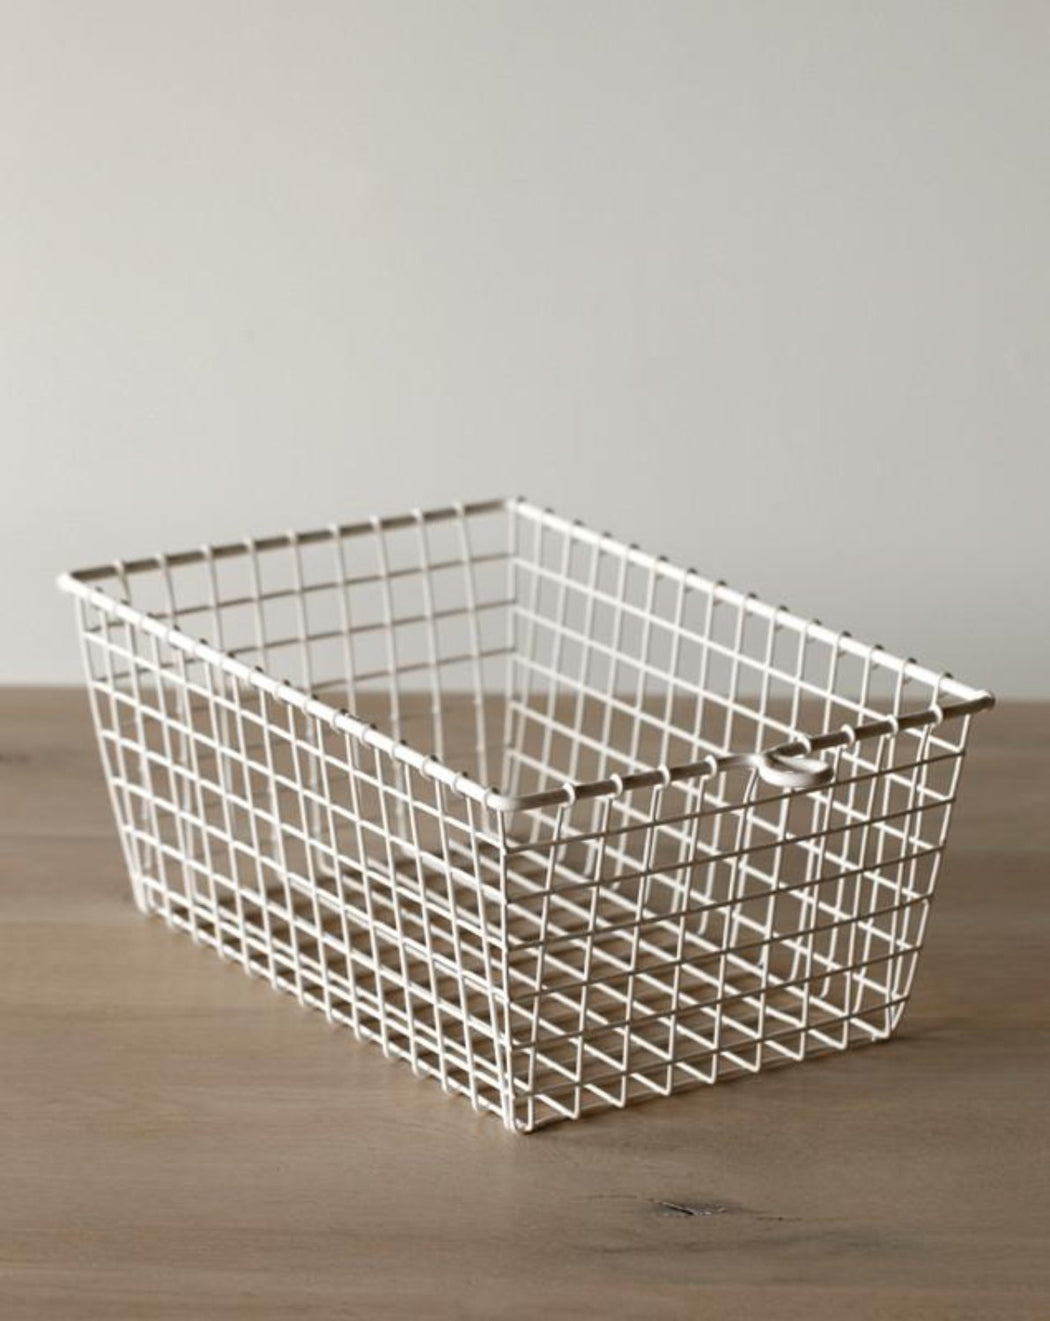 Wire Gym Basket - White - Organization - Lostine